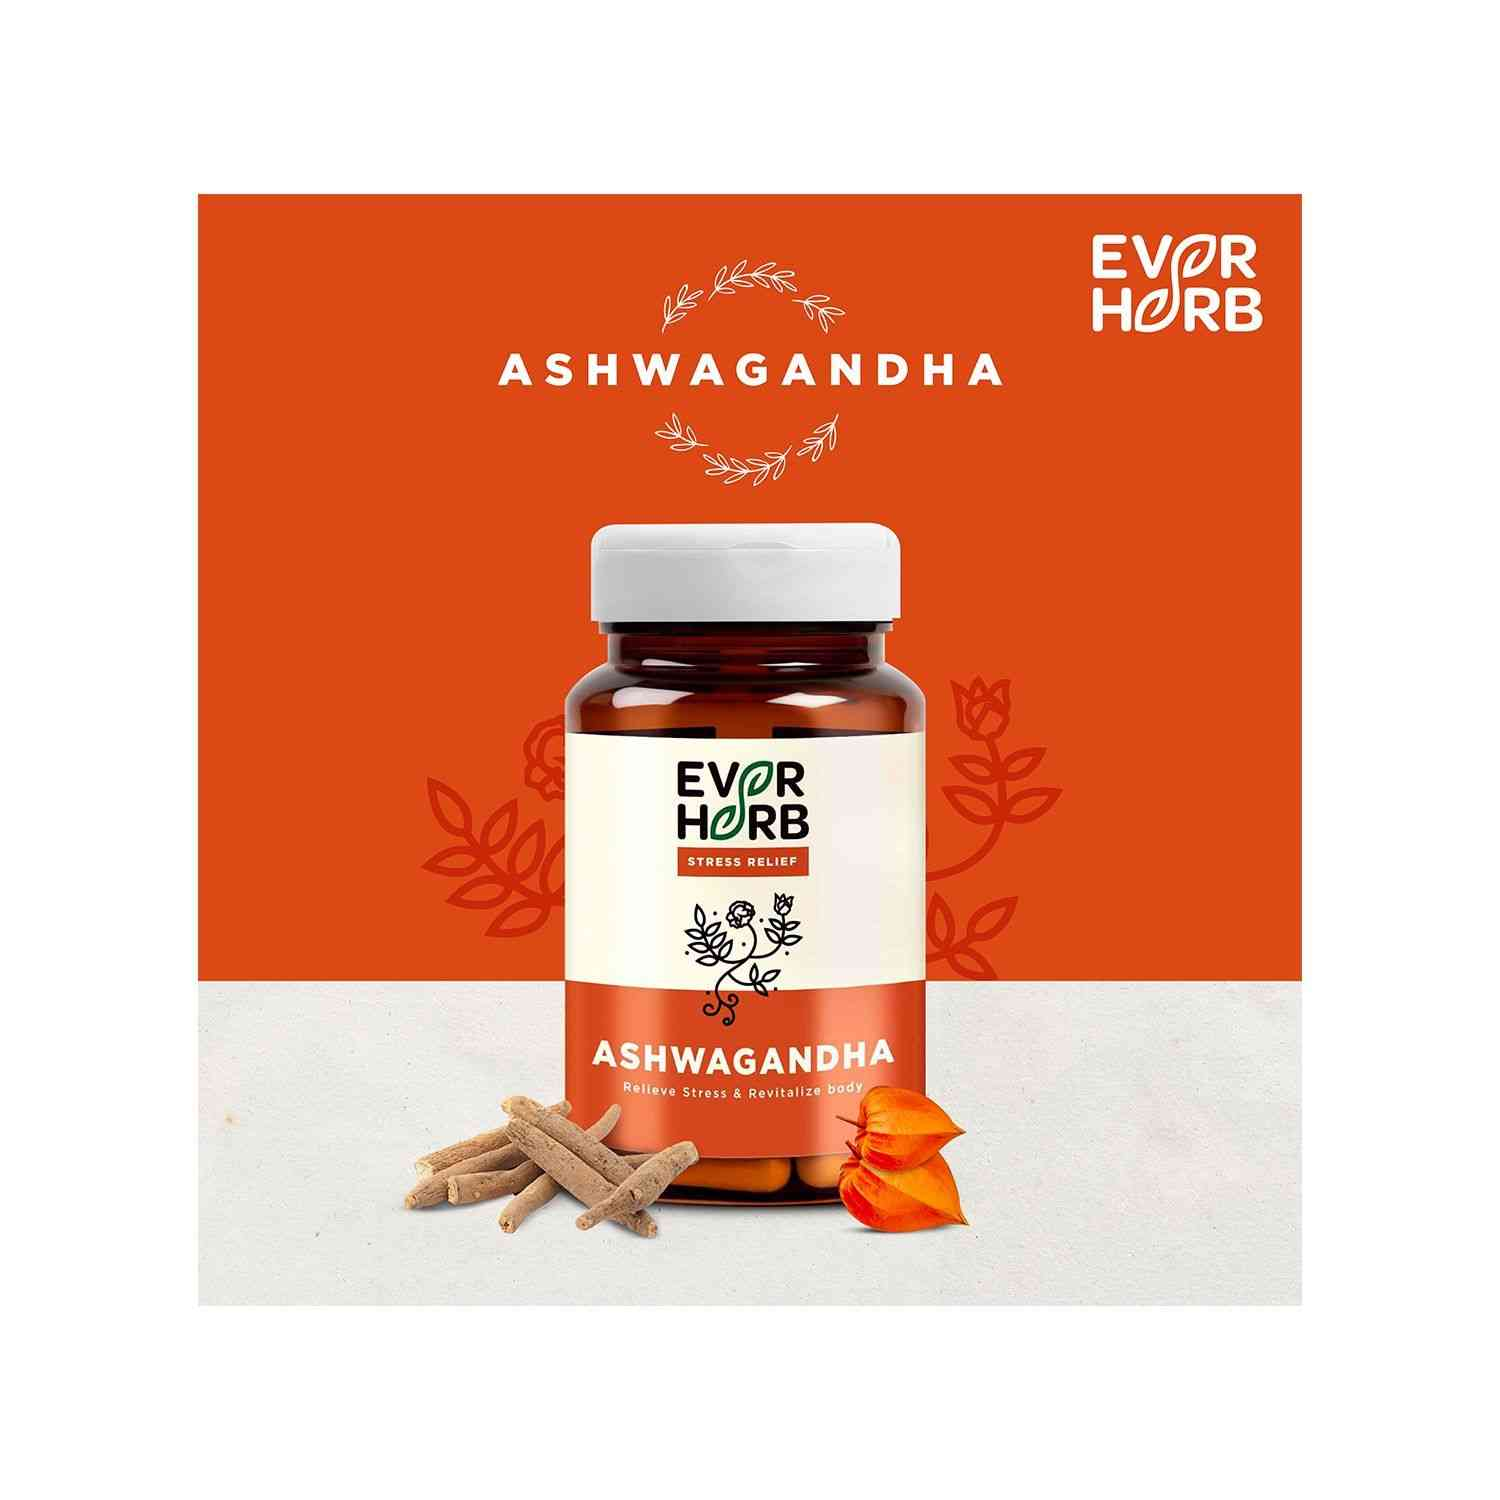 Everherb Ashwagandha - Immunity Booster Capsules - Anxiety & Stress Relief - Bottle Of 60